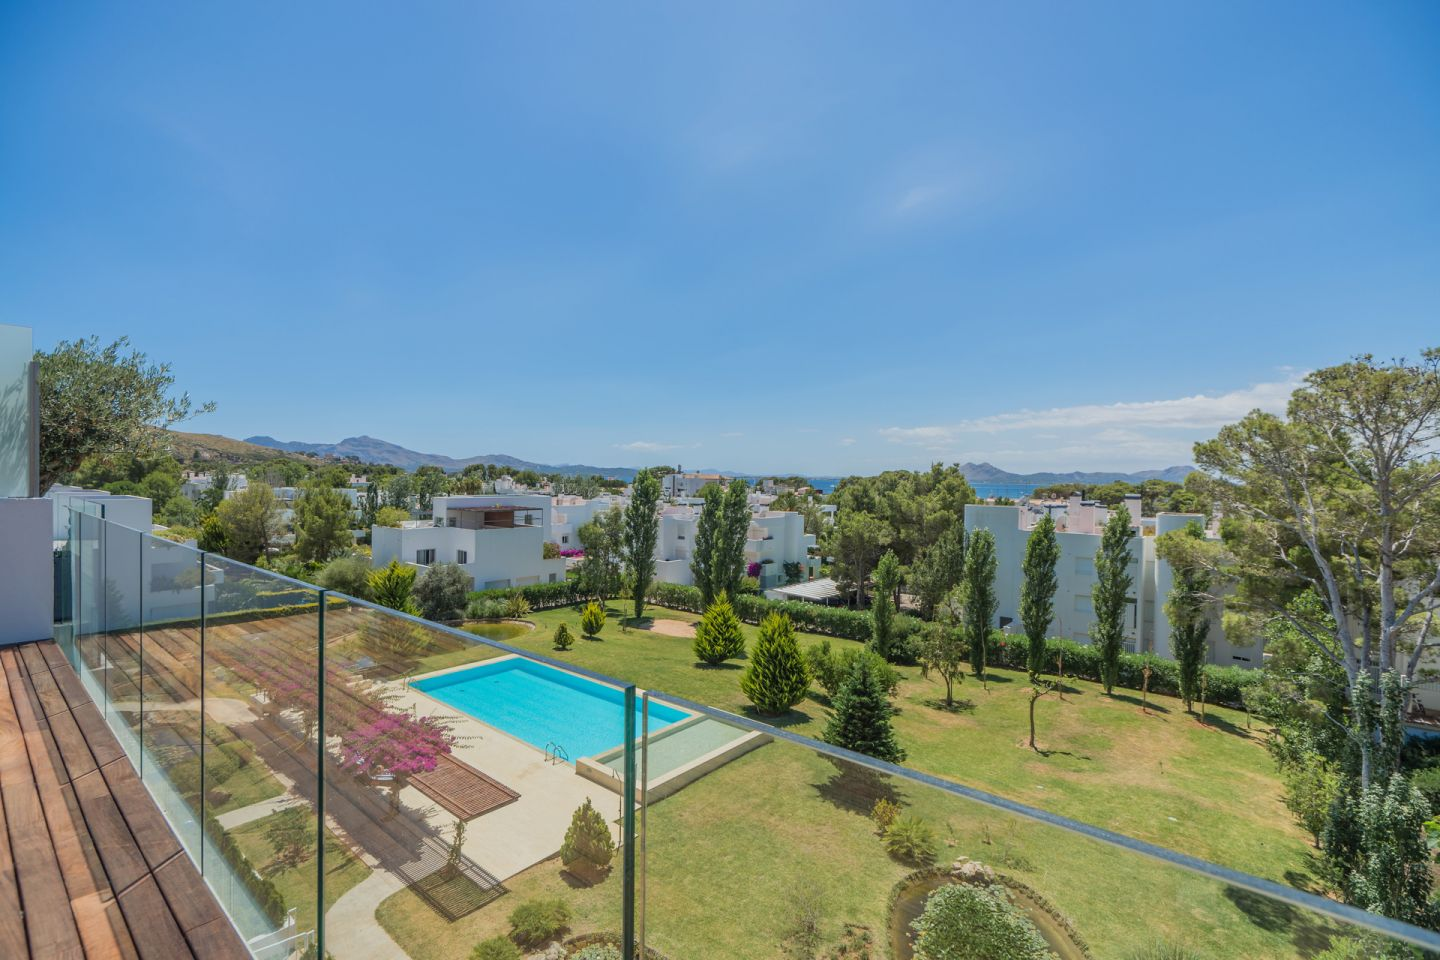 4 Bed Penthouse For Sale in PUERTO POLLENSA 11